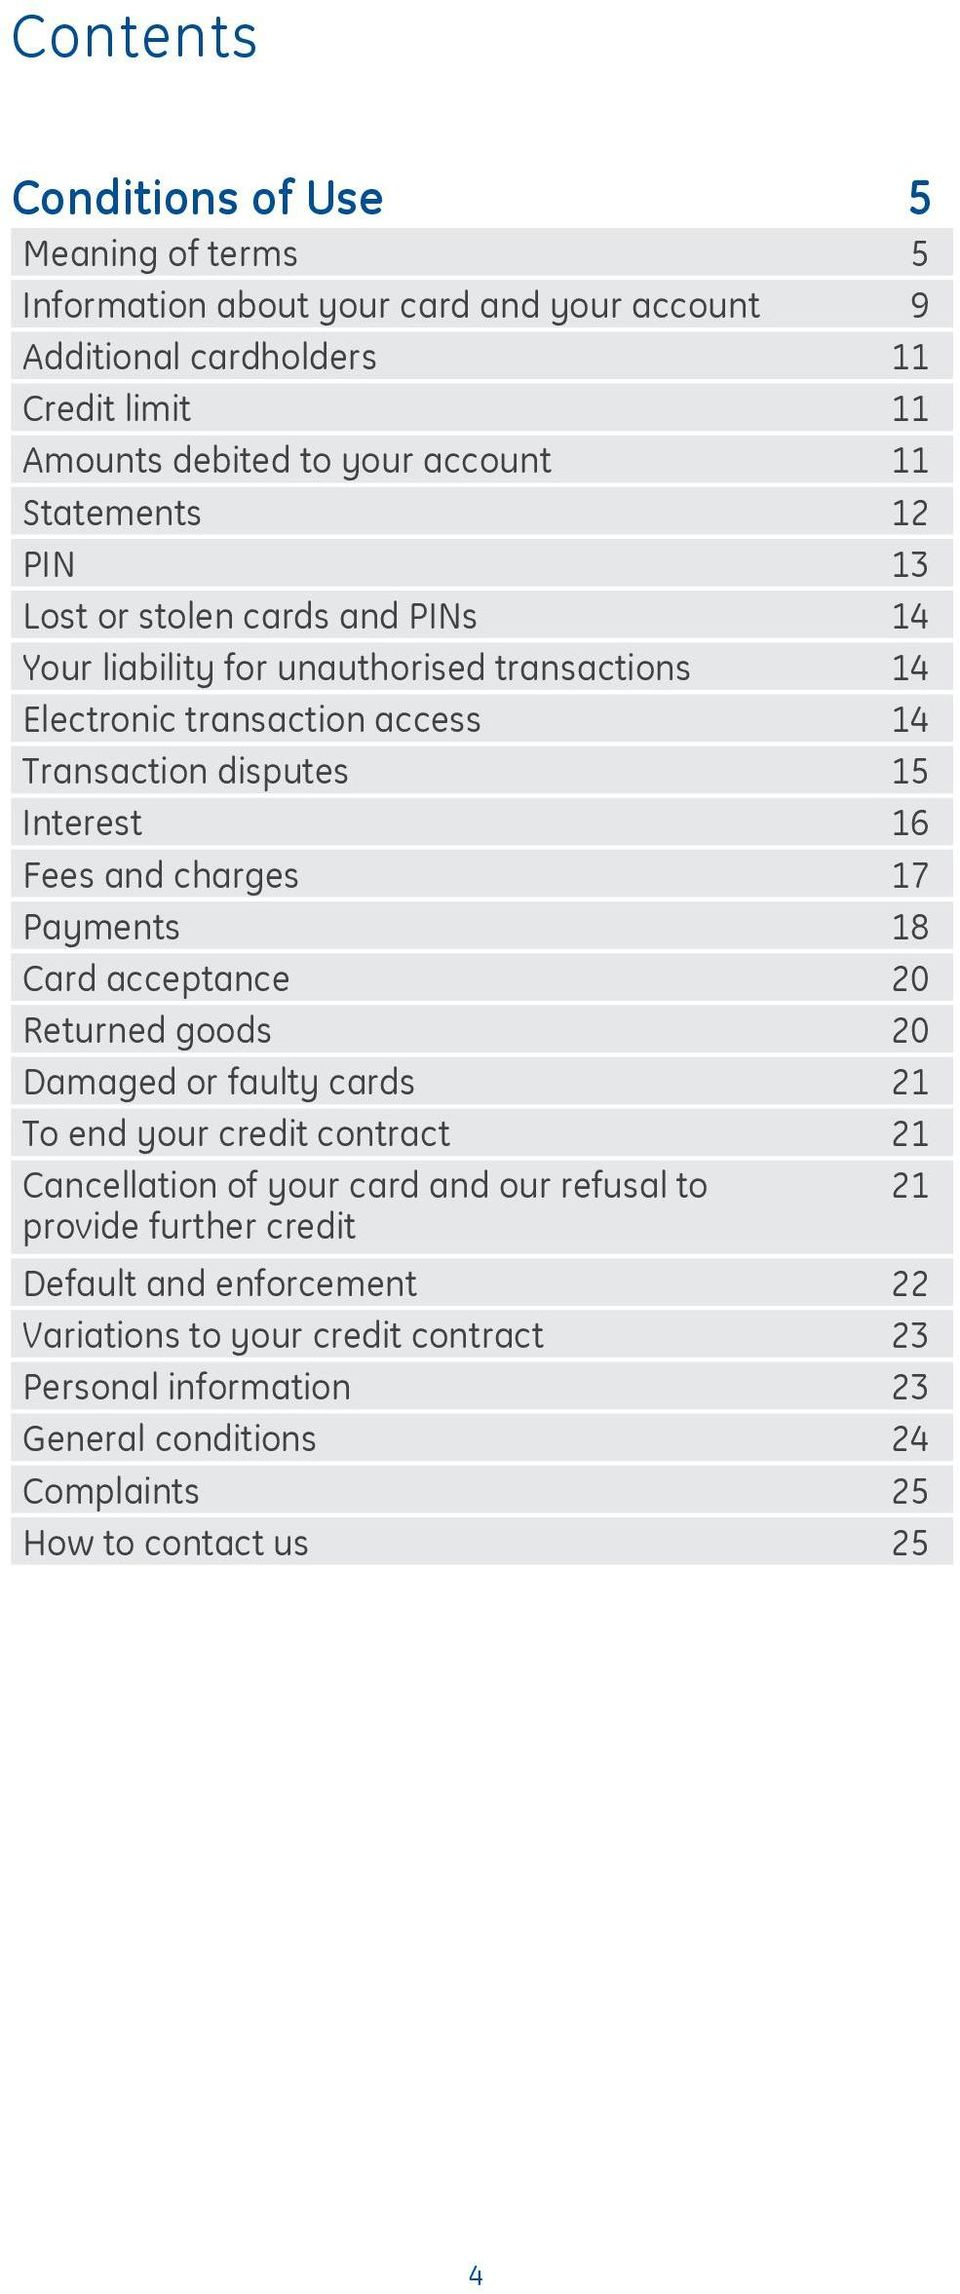 Fees and charges 17 Payments 18 Card acceptance 20 Returned goods 20 Damaged or faulty cards 21 To end your credit contract 21 Cancellation of your card and our refusal to